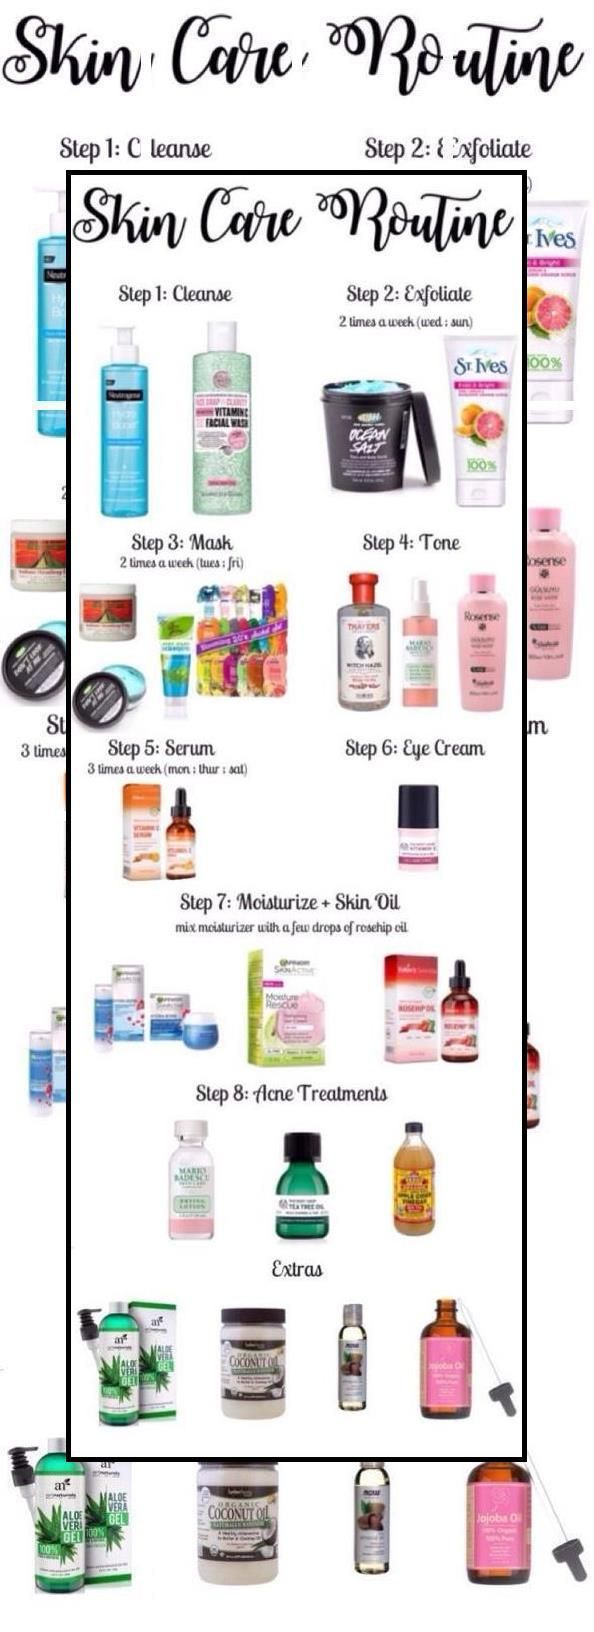 Skin Care Product Reviews Dermatologist Tips For Healthy